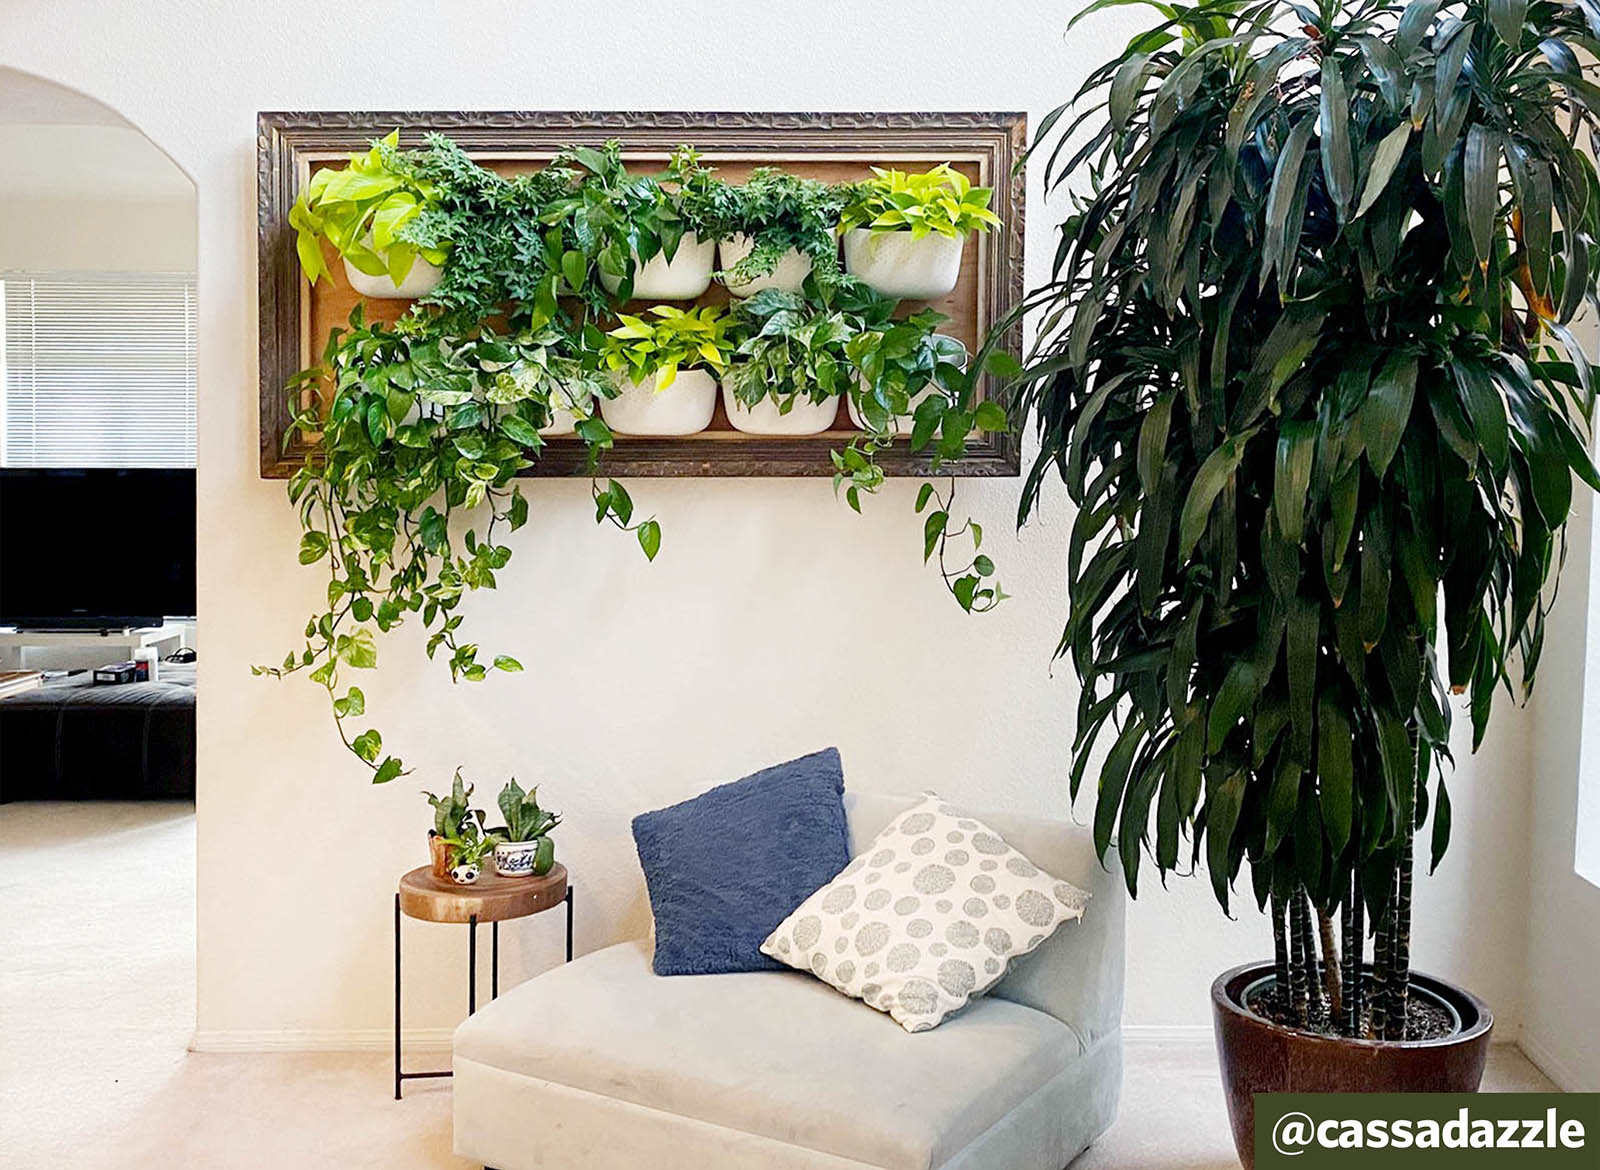 Creating an Upcycled Frame for Your Vertical Garden with @cassadazzle